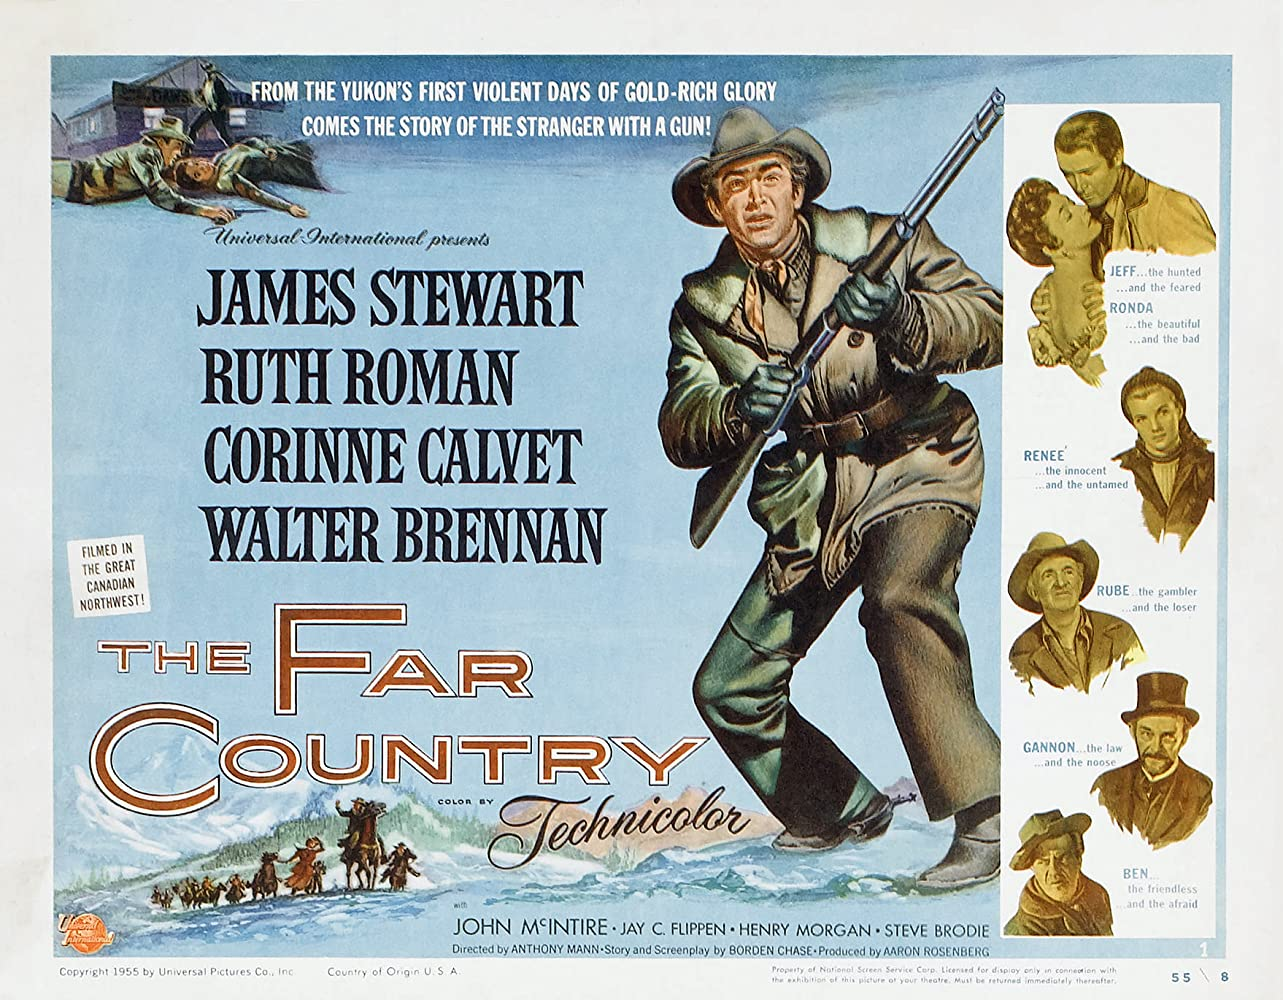 James Stewart, Walter Brennan, Corinne Calvet, Jay C. Flippen, John McIntire, and Ruth Roman in The Far Country (1954)